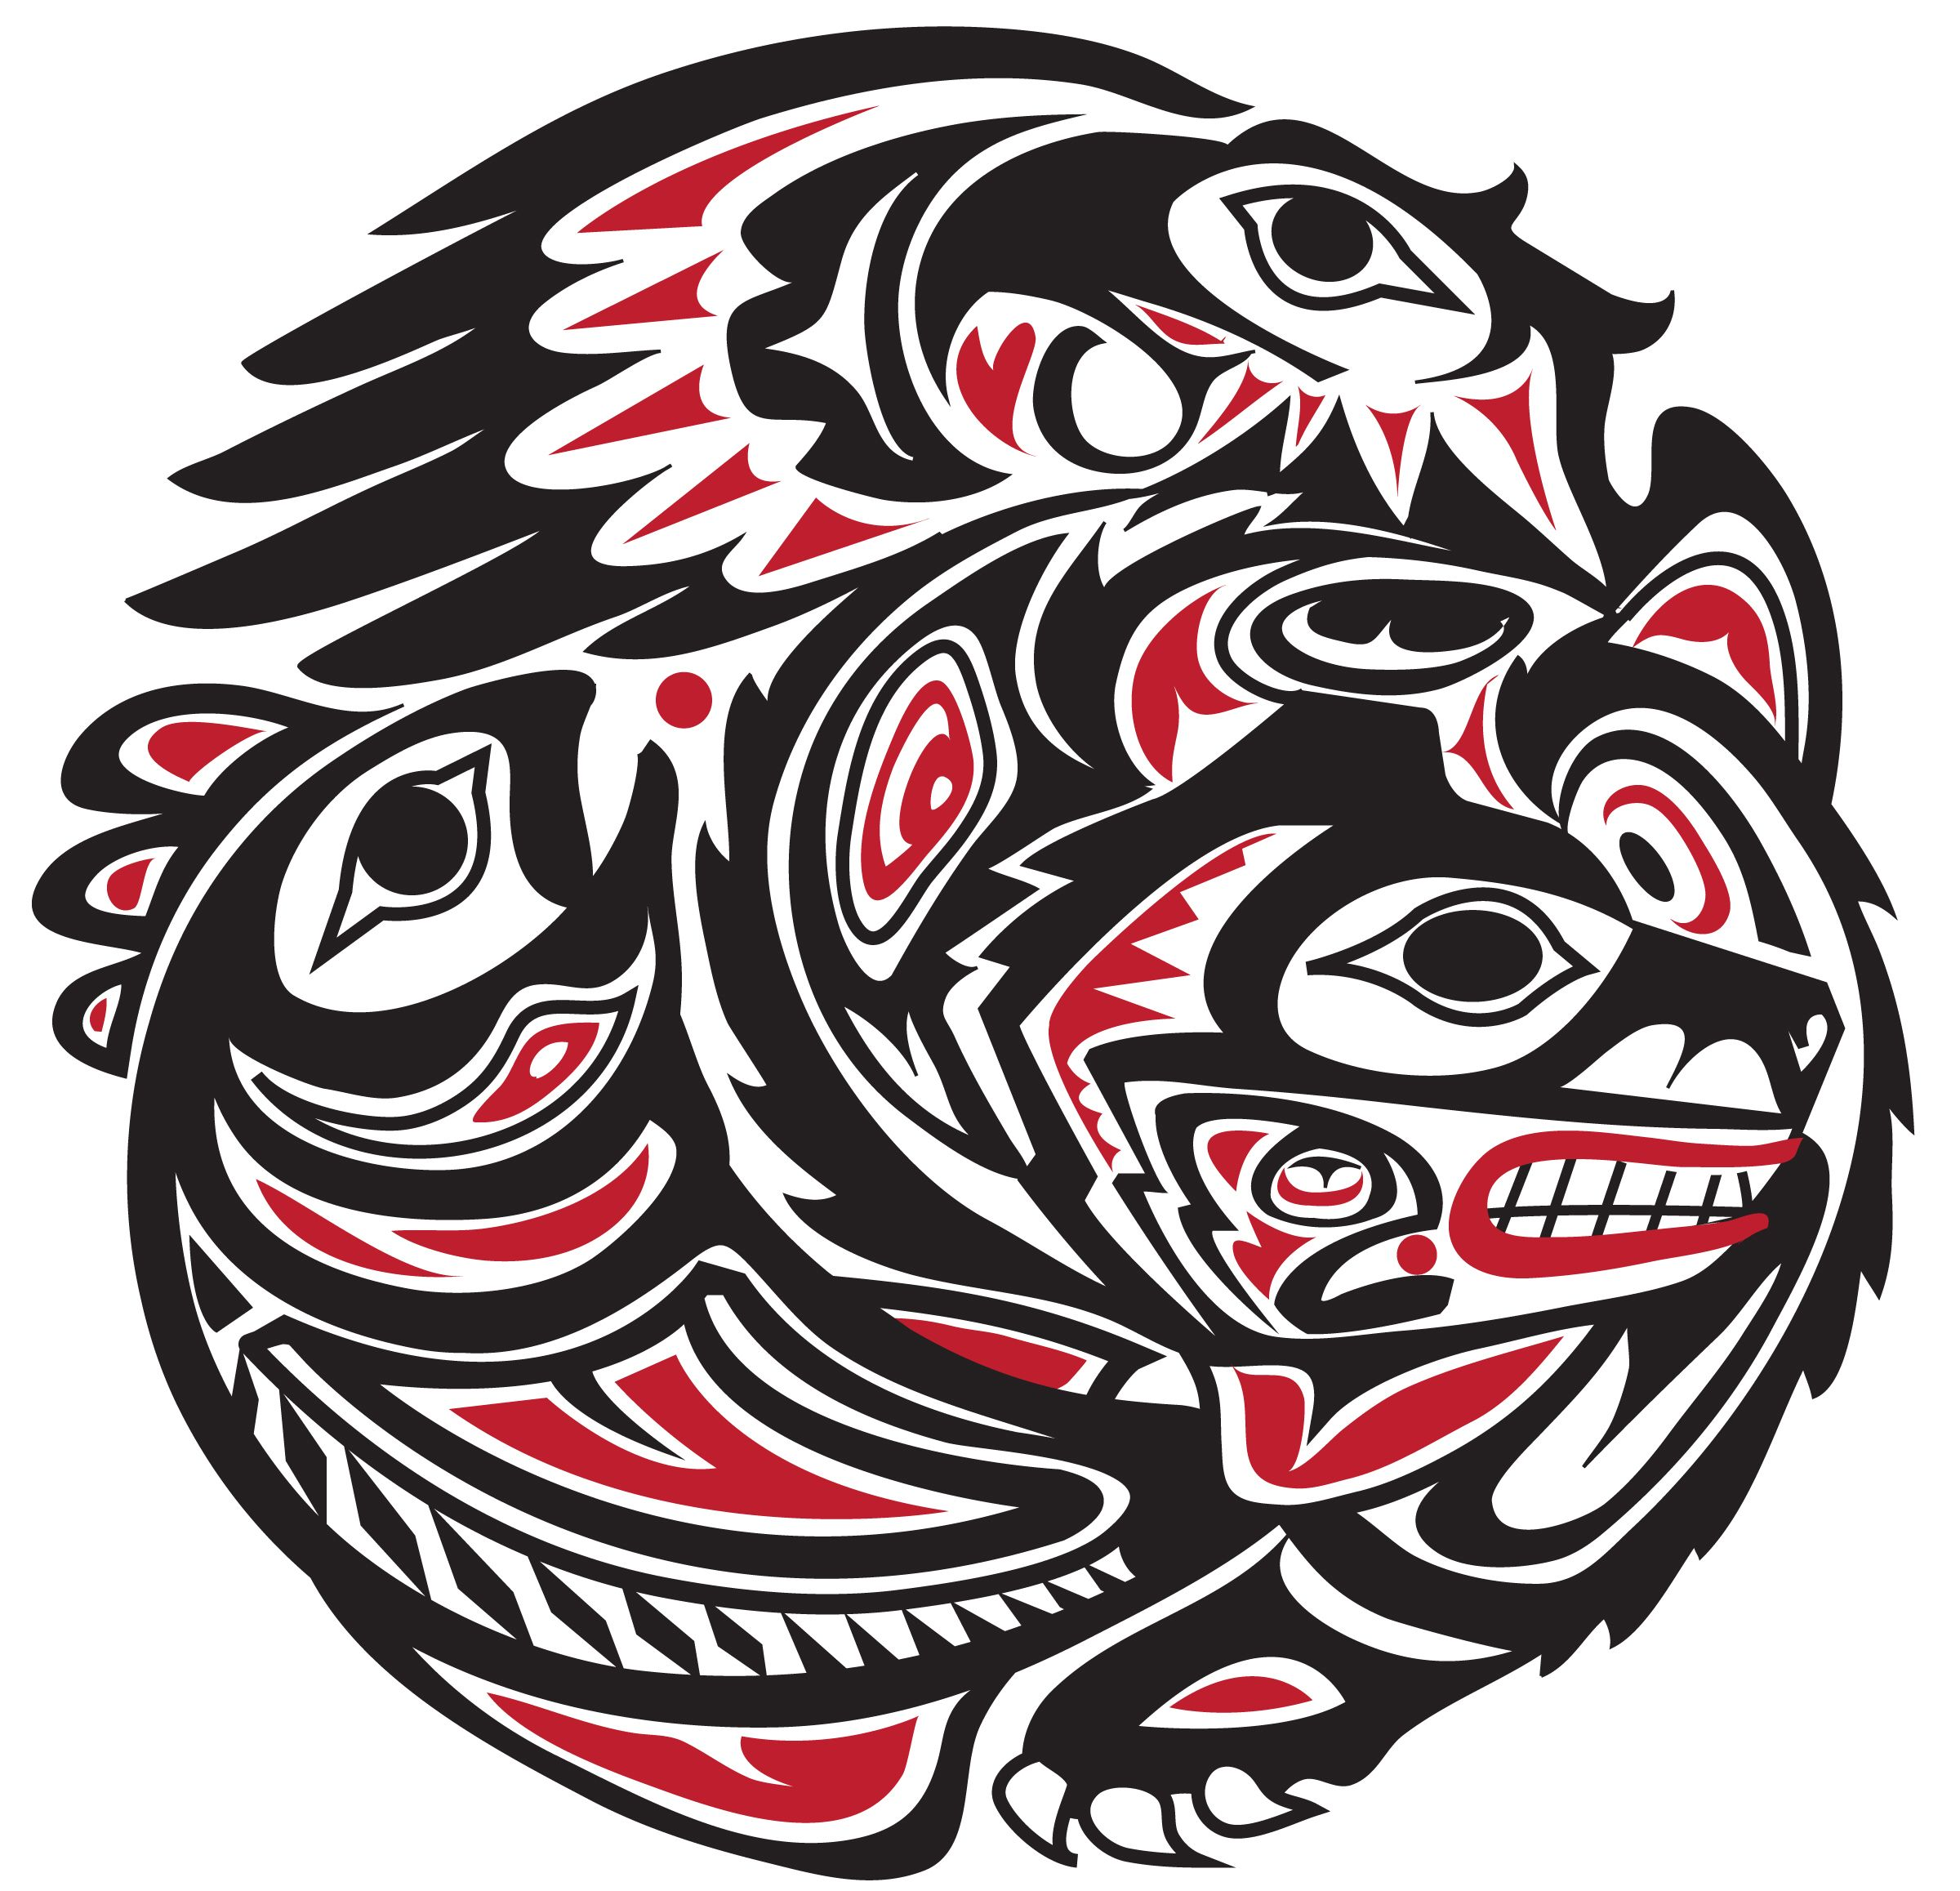 Image from http://www.intrigueillustration.com/wp-content/uploads/2013/08/haida-final-8-copy.jpg.